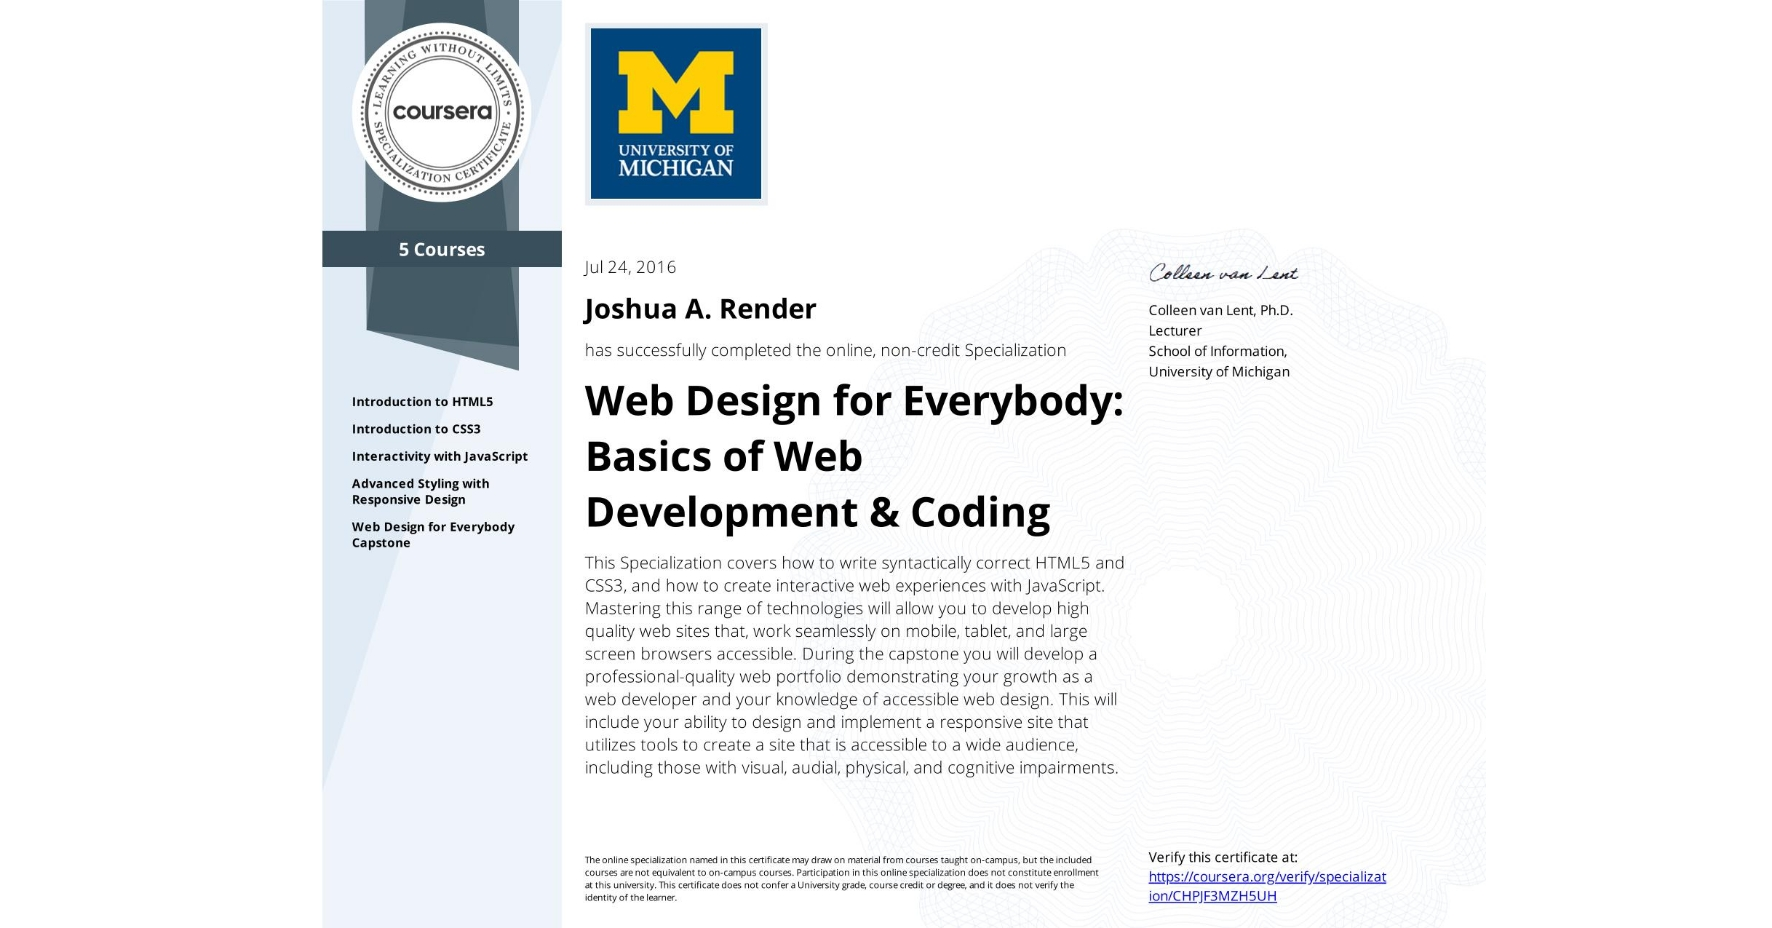 View certificate for Joshua A. Render, Web Design for Everybody: Basics of Web Development & Coding, offered through Coursera. This Specialization covers how to write syntactically correct HTML5 and CSS3, and how to create interactive web experiences with JavaScript. Mastering this range of technologies will allow you to develop high quality web sites that, work seamlessly on mobile, tablet, and large screen browsers accessible. During the capstone you will develop a professional-quality web portfolio demonstrating your growth as a web developer and your knowledge of accessible web design. This will include your ability to design and implement a responsive site that utilizes tools to create a site that is accessible to a wide audience, including those with visual, audial, physical, and cognitive impairments.